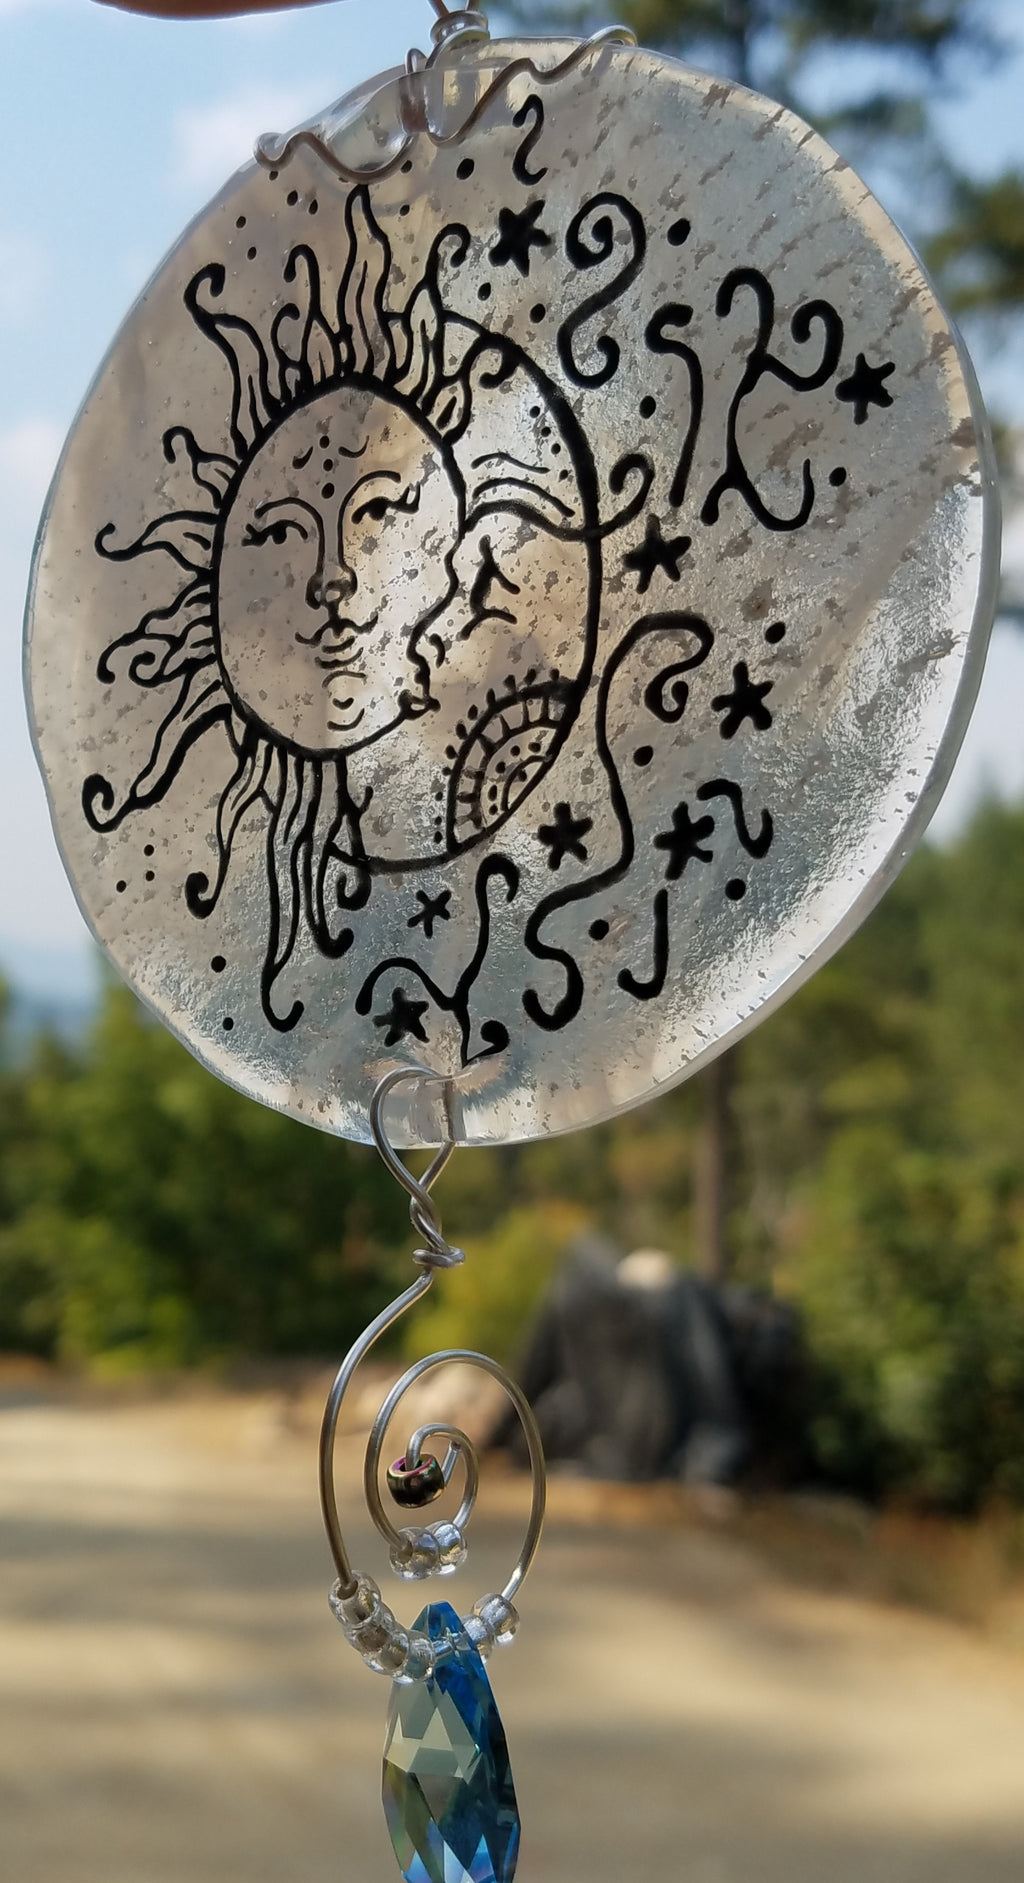 side view moon and sun sun catcher outside Celebration of life Funeral Memorials. Ashes in Glass Cremation Glass Art Sculptures, Cremation Wind Chimes, Cremation Sun Catchers, Table Displays, & Cremation Jewelry Custom USA Handmade by Infusion Glass. Ashes Infused Glass Human and Pet Cremation Ash Urns  Ashesinfusedglass.com